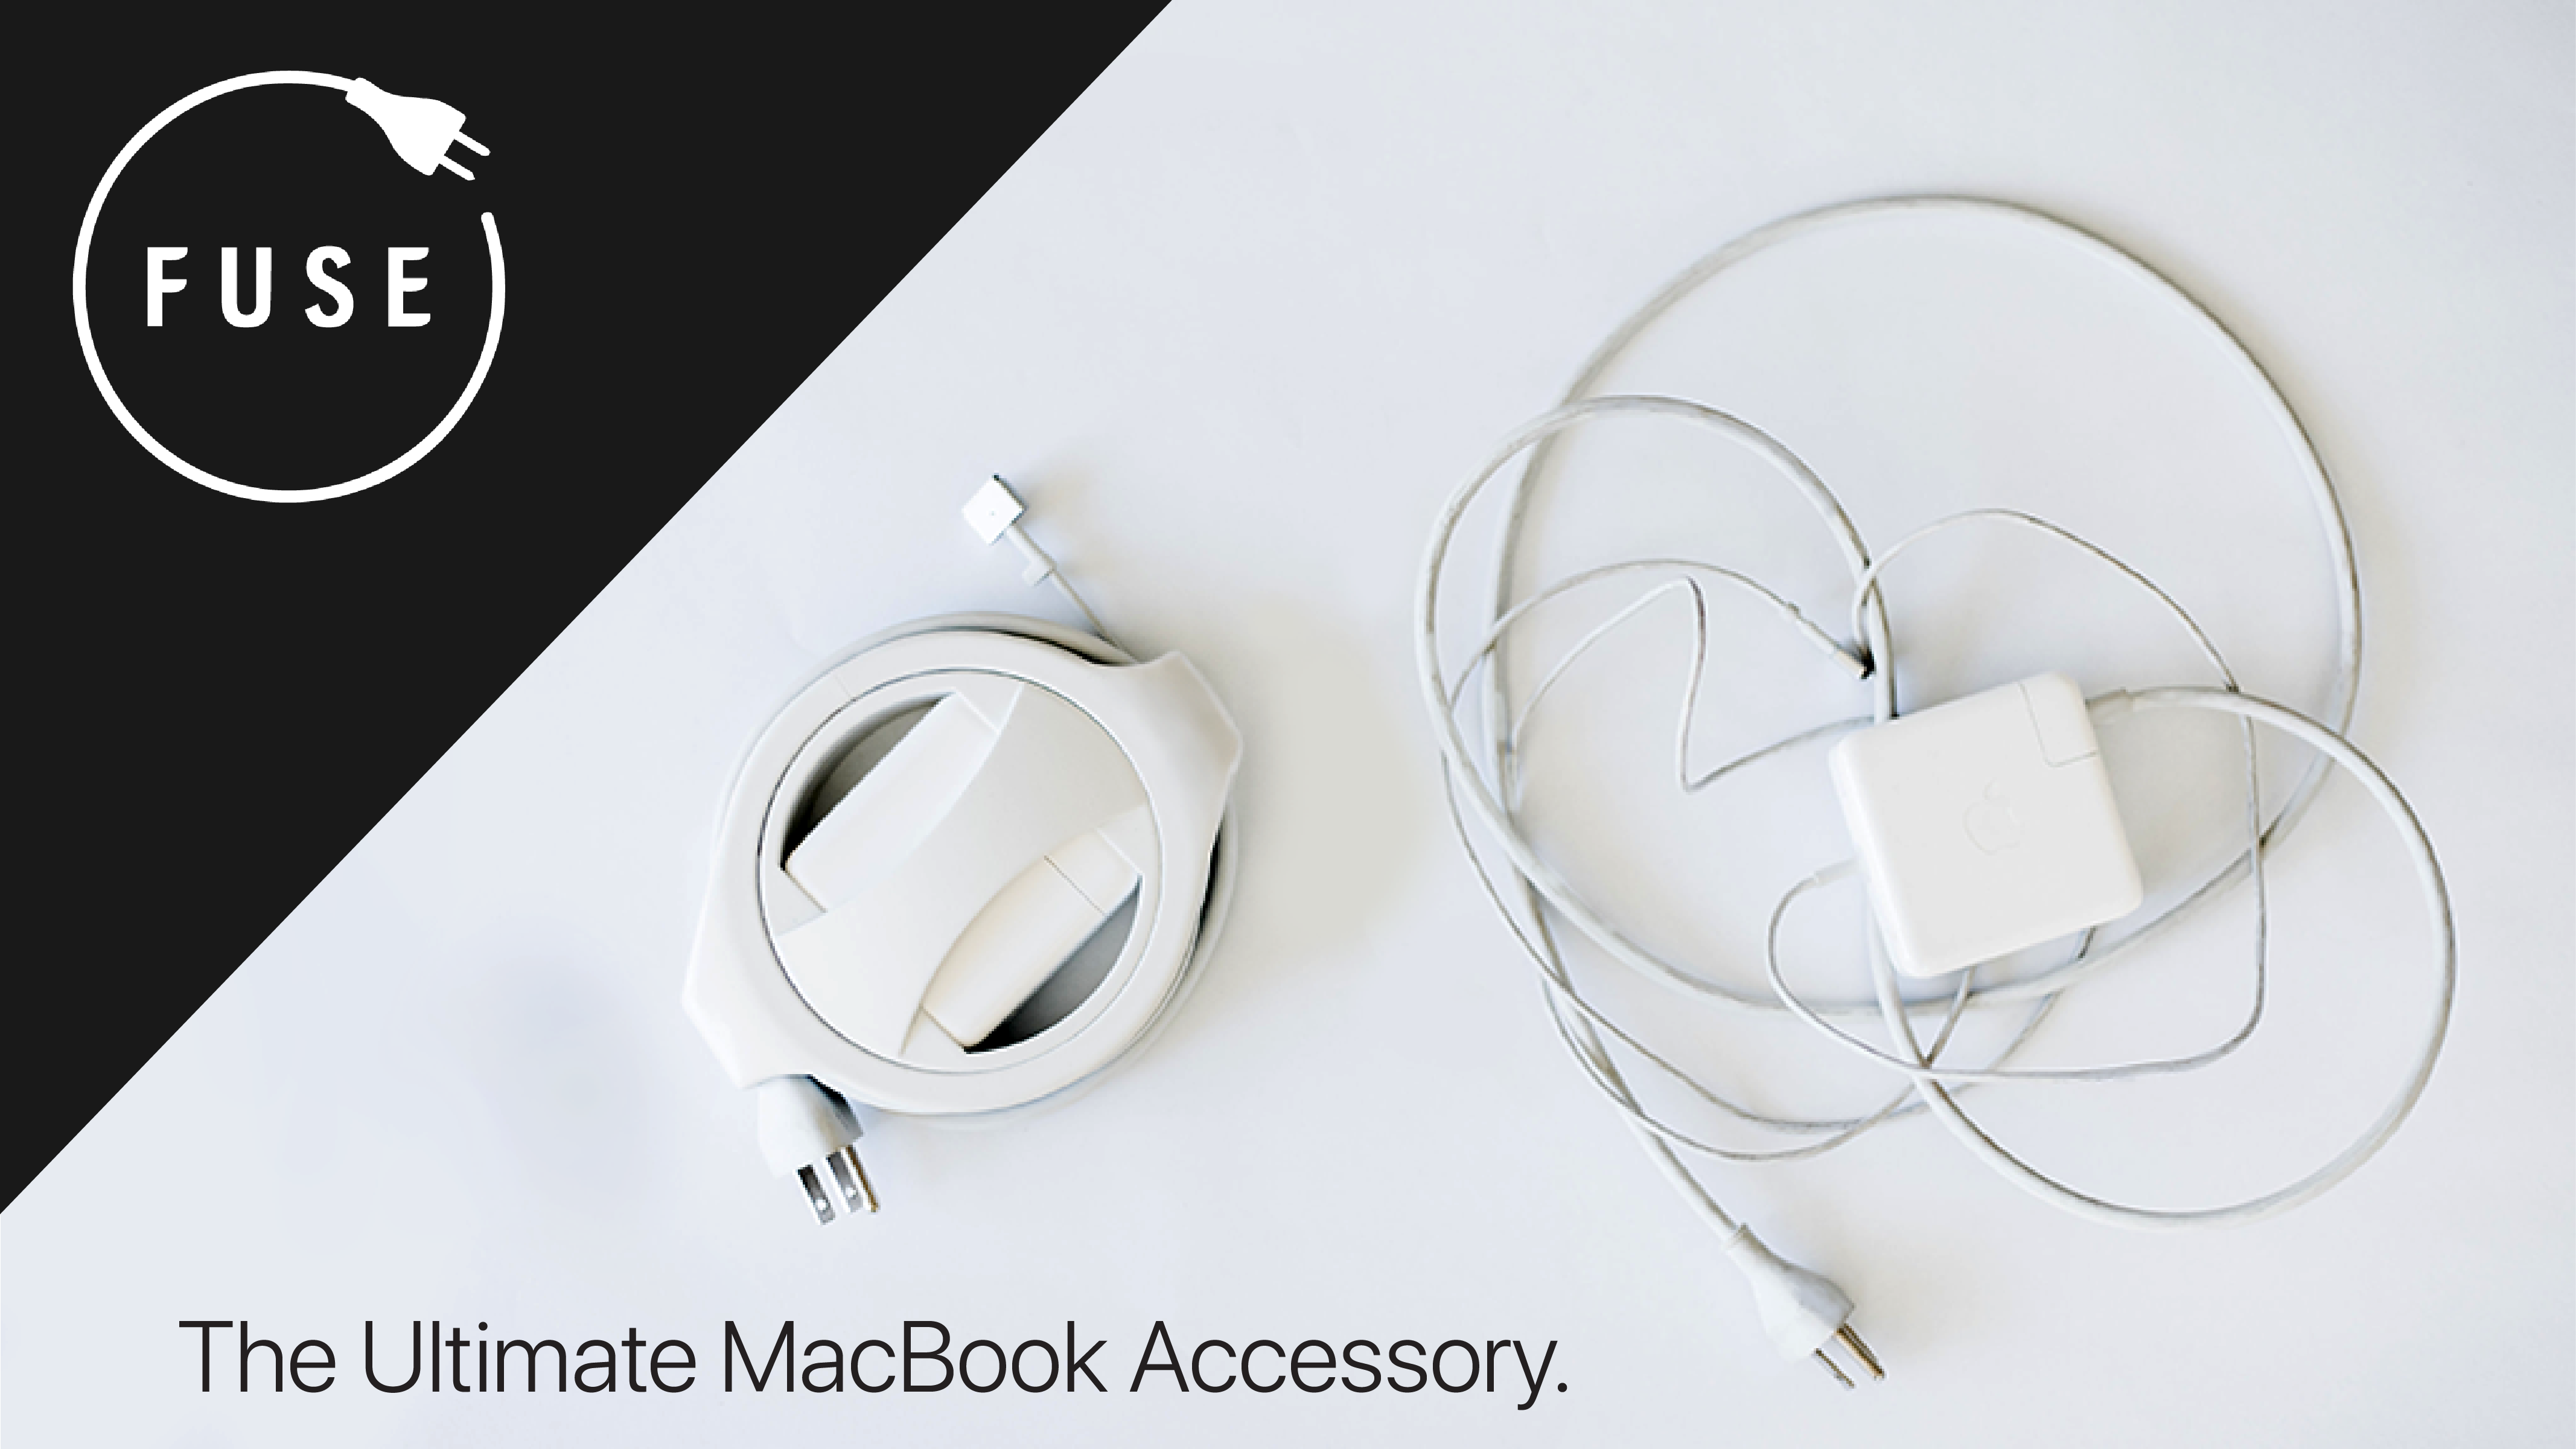 The MacBook accessory Apple should have created